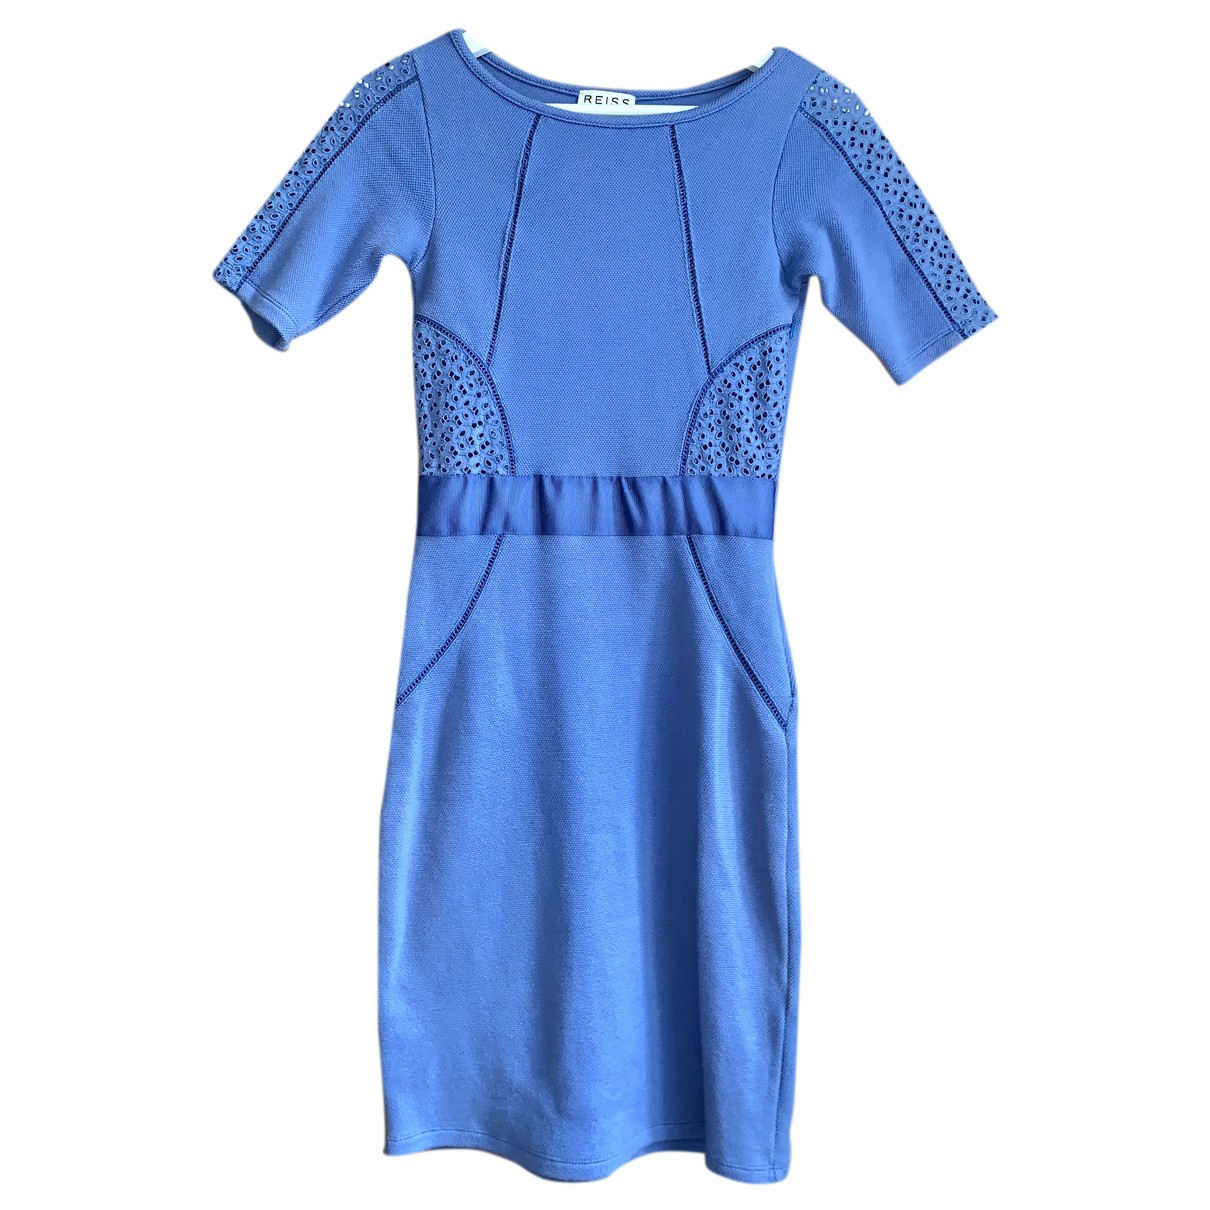 Reiss \N Kleid in  Blau Baumwolle